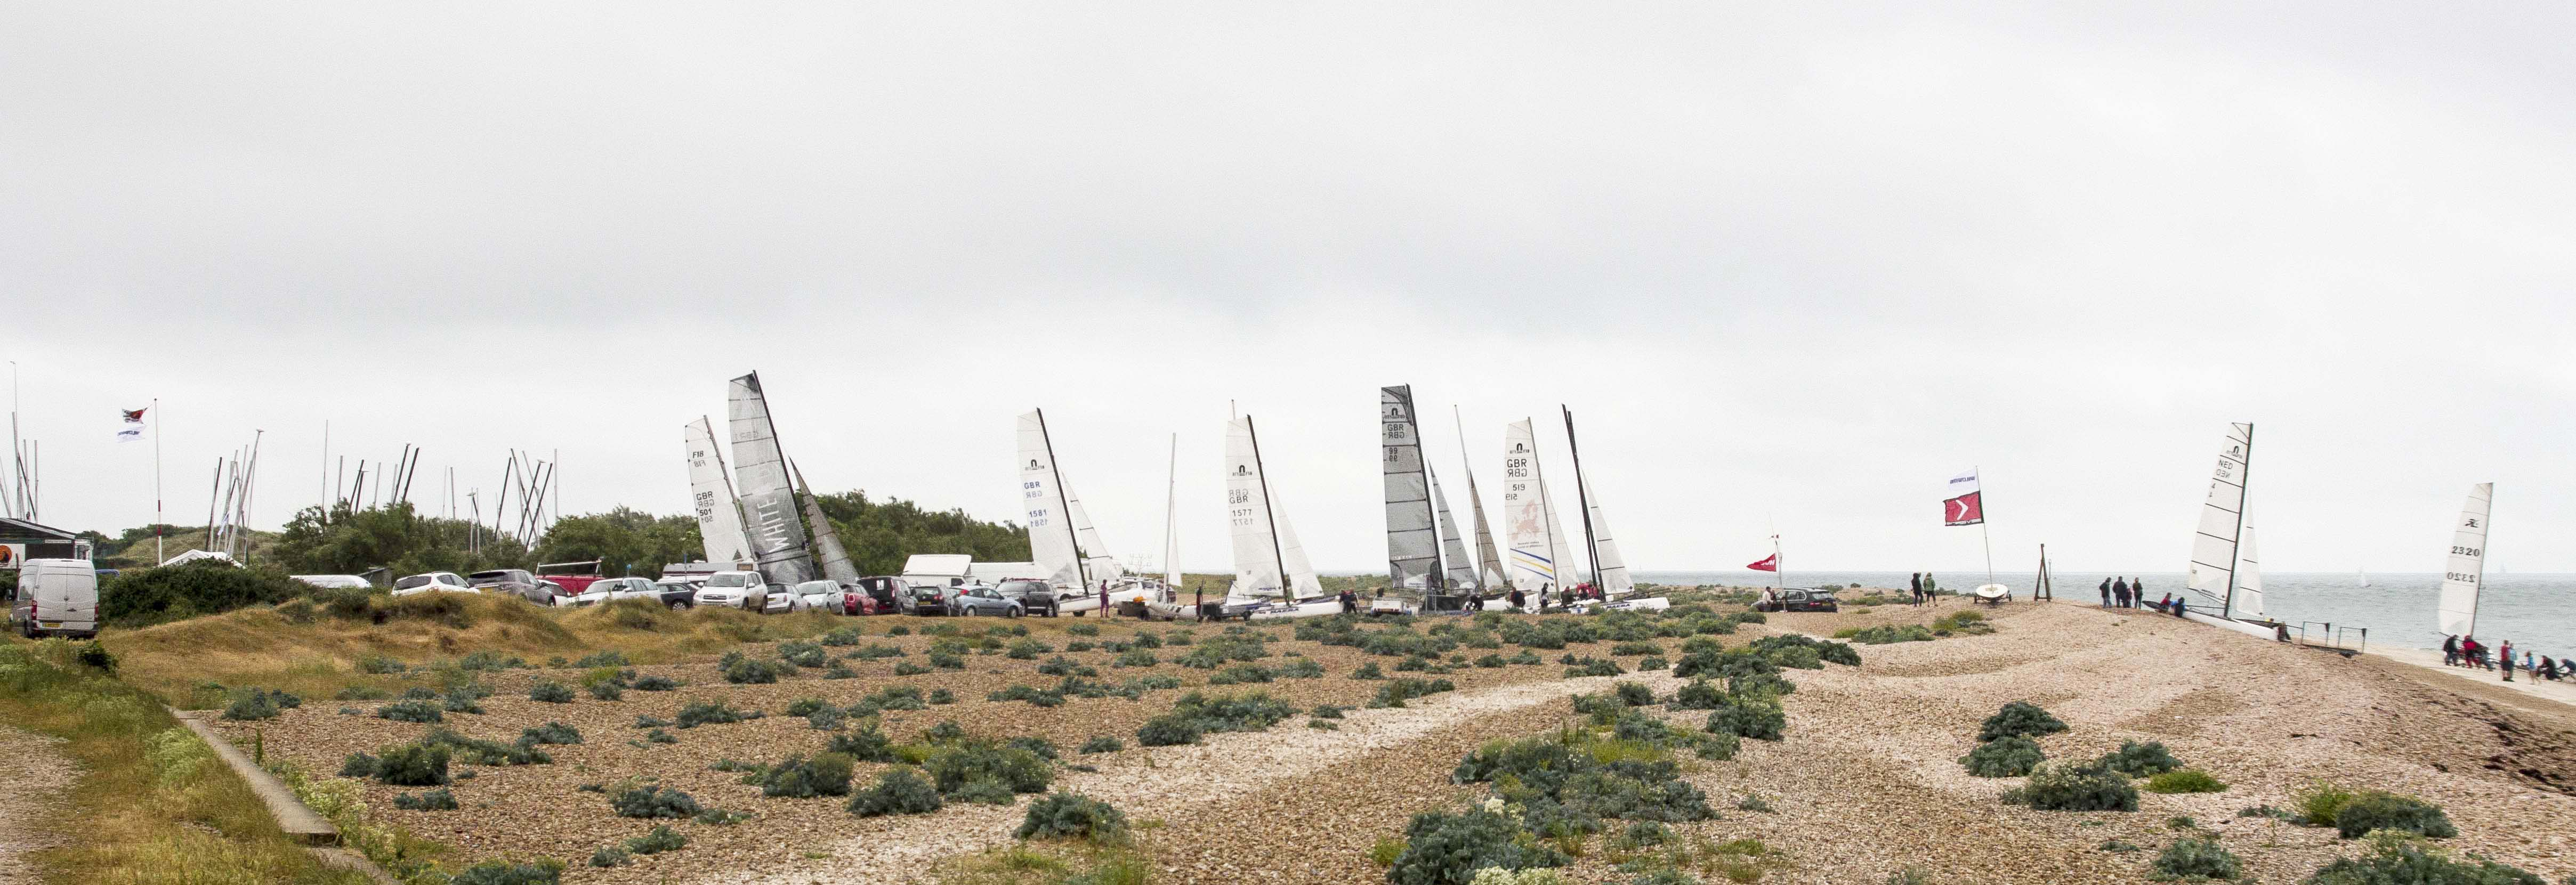 Boats lined up ready to launch for the start of the 2016 Solent Forts Race